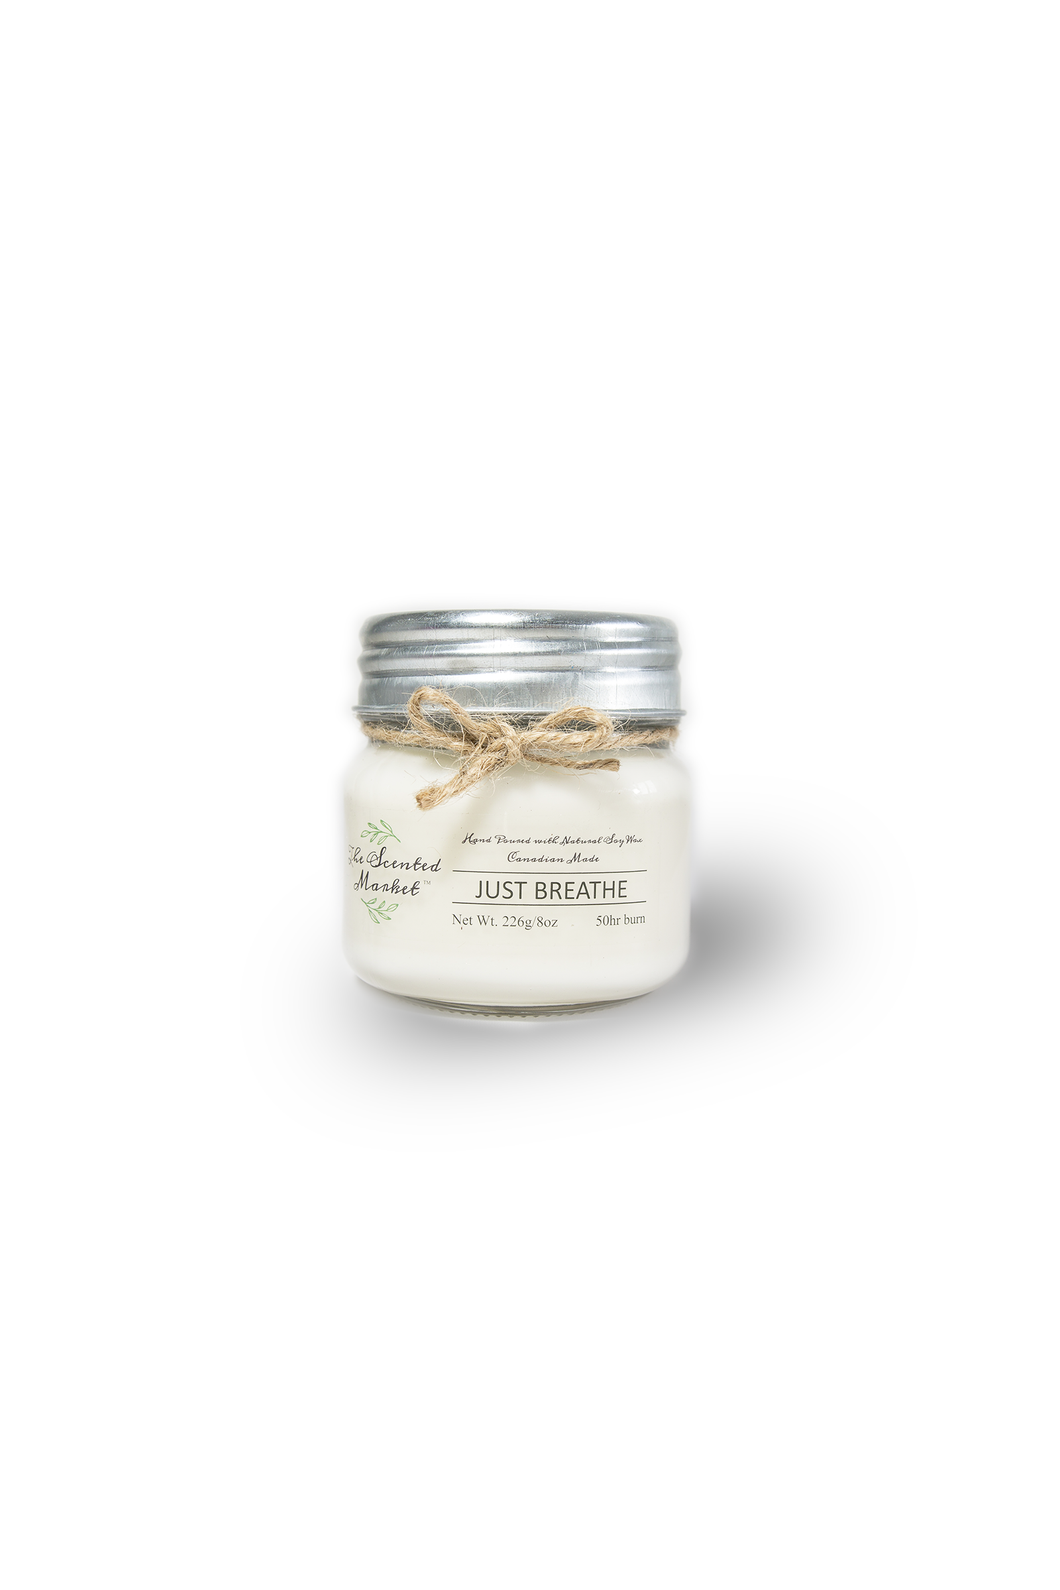 Fall JUST BREATHE Soy Wax Candle 8 oz Wholesale